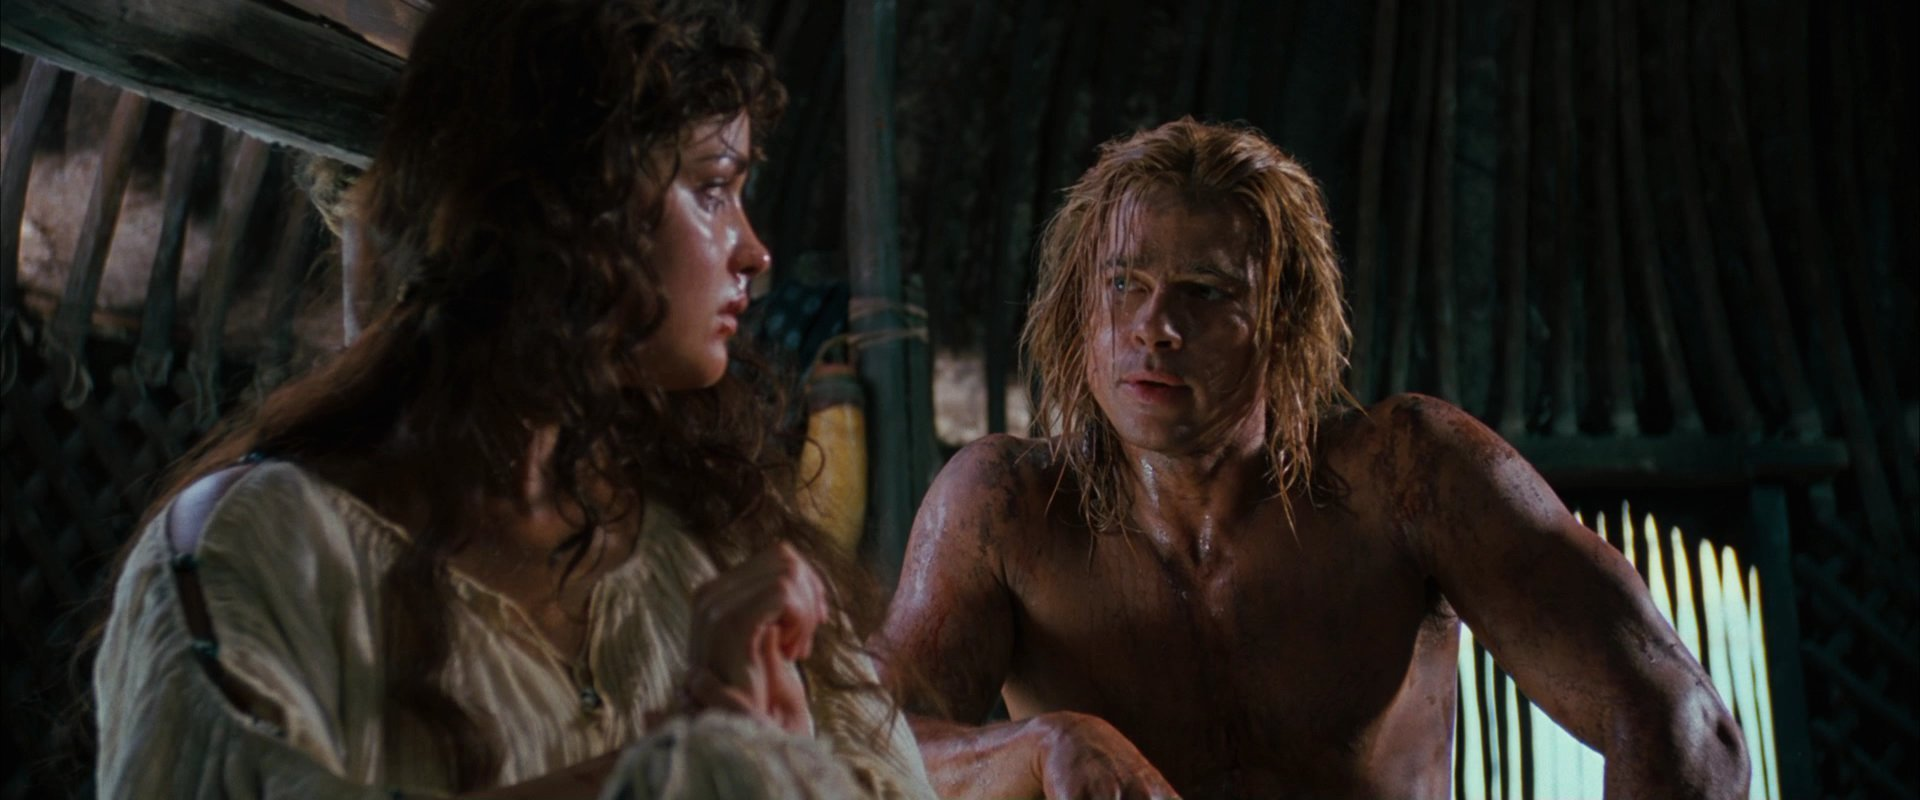 troy film achilles and briseis relationship